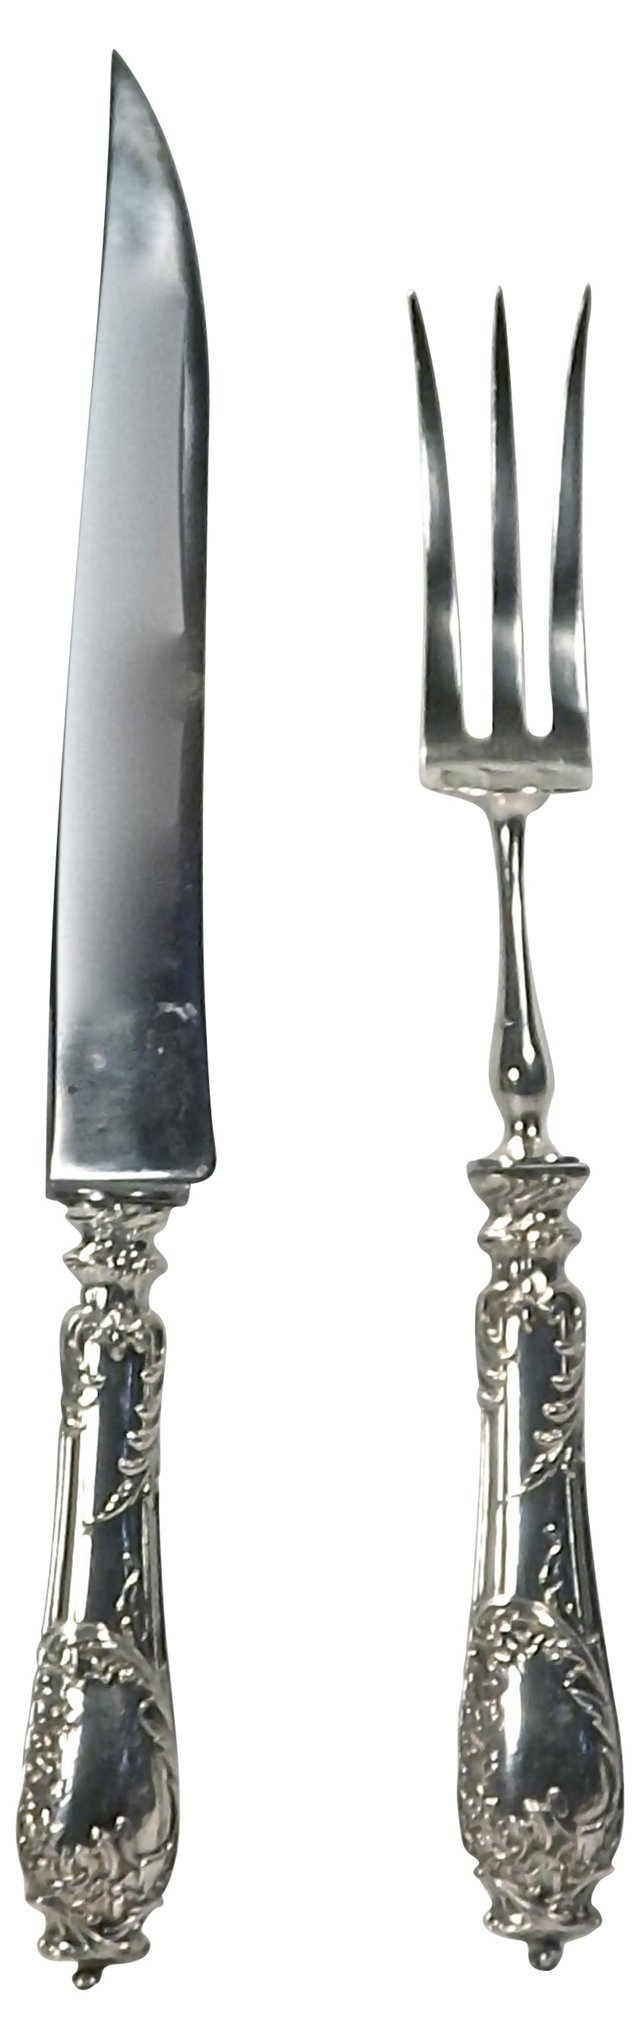 Antique French Silver Carving Set, 2 Pcs